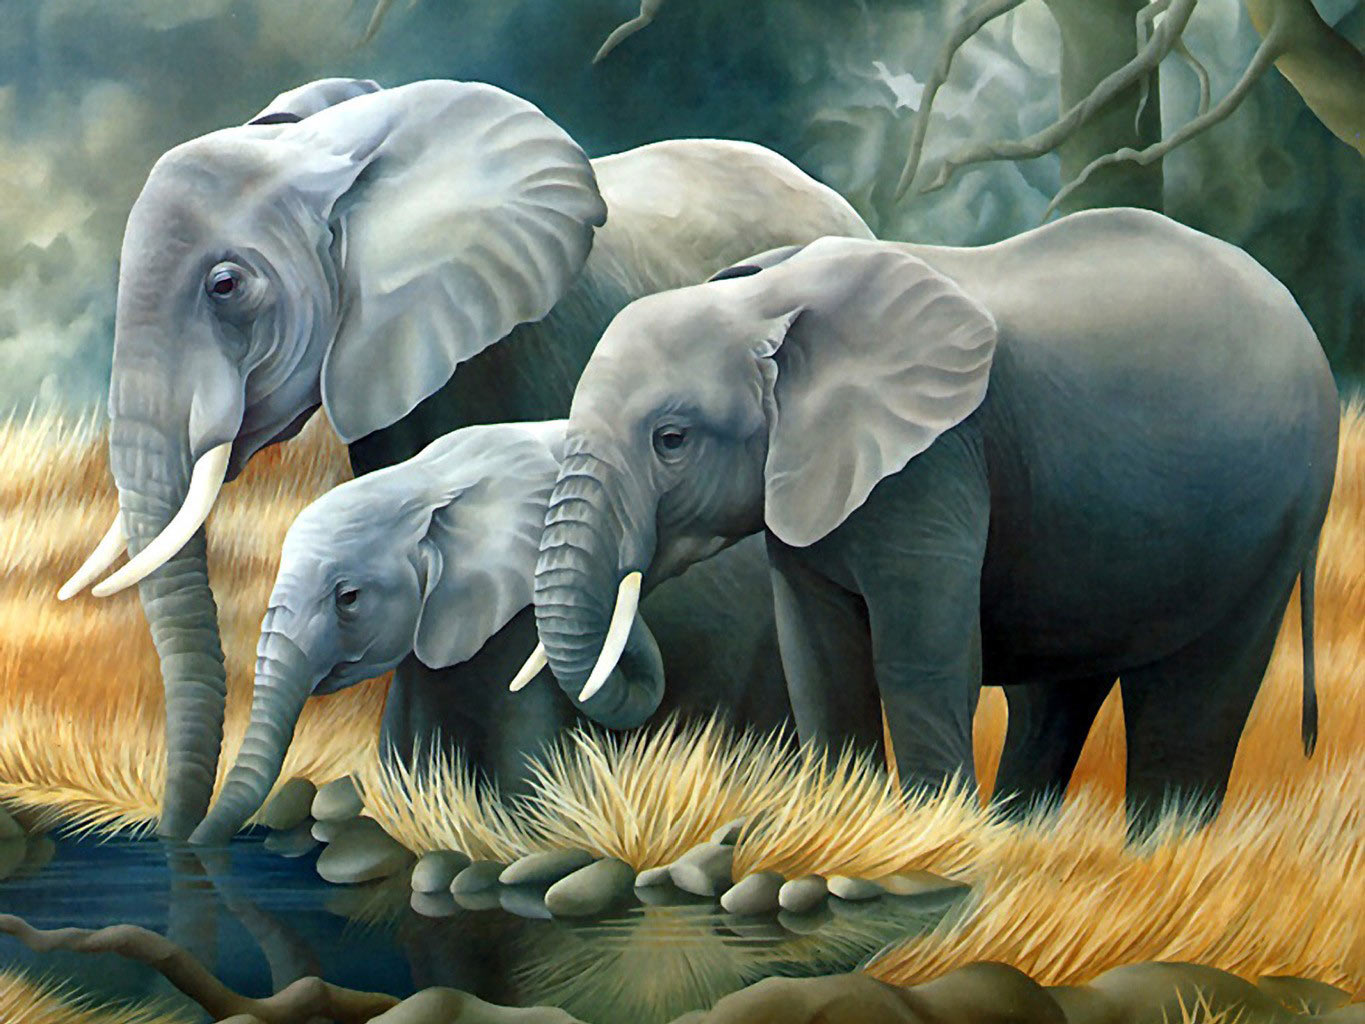 Desktop Wallpaper · Gallery · 3D-Art · 3d animals - Elephants | Free Background 1365x1024